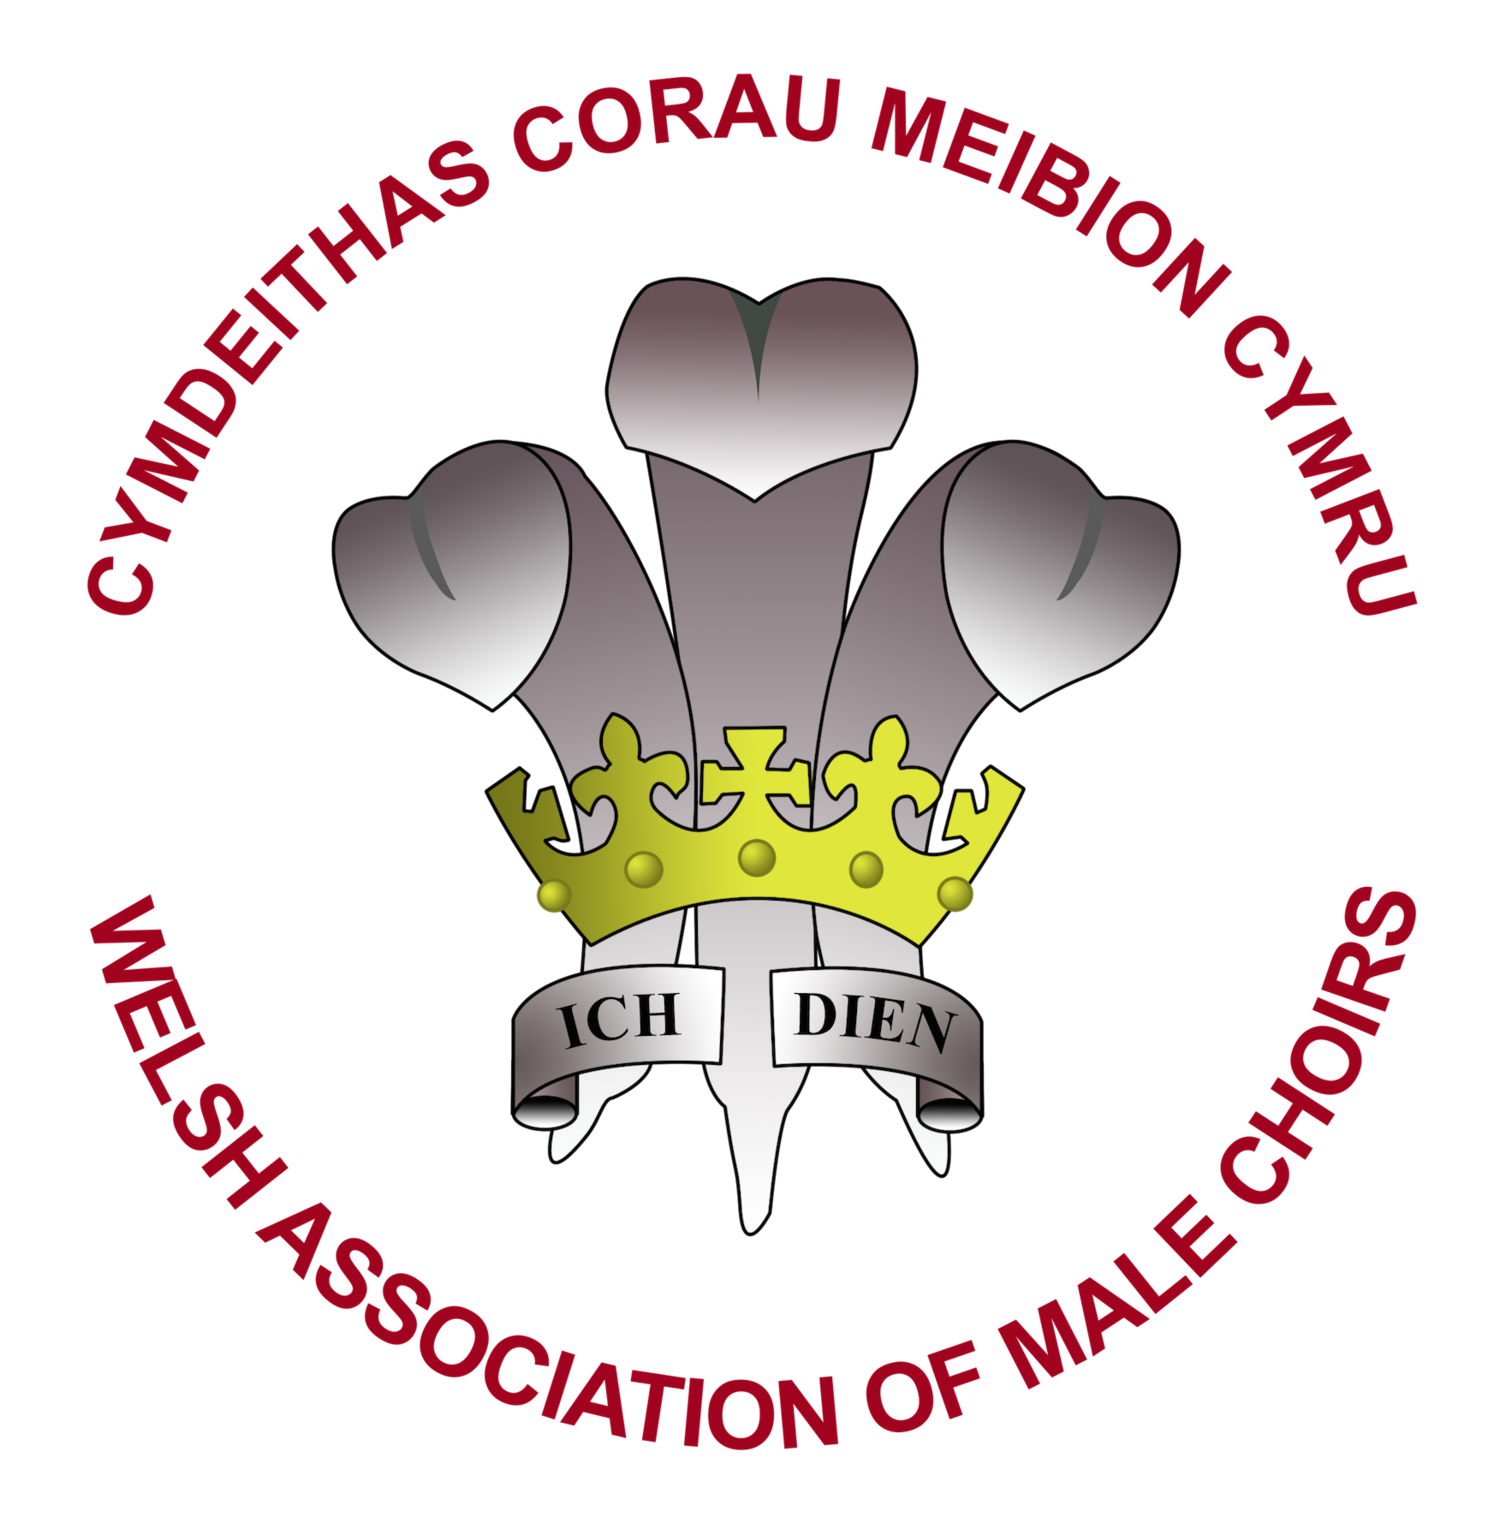 Welsh Association Of Male Choirs